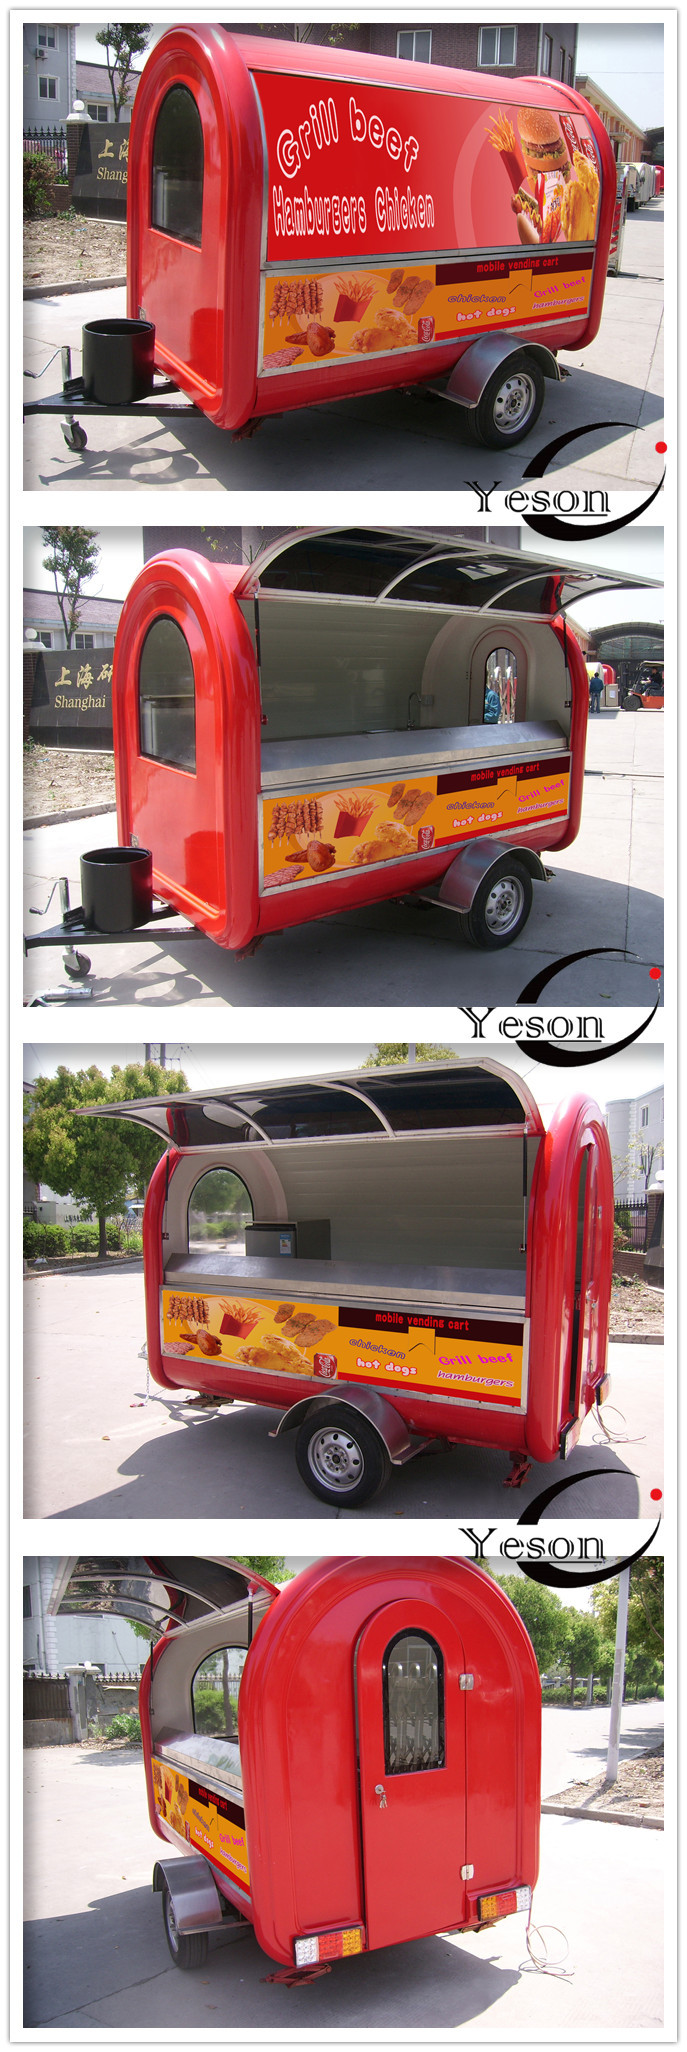 Yieson Made Hot Selling Street Vending Carts/Food truck for sale in china Mobile Fast Kiosk/Fast Mobile Food Trailer FV300